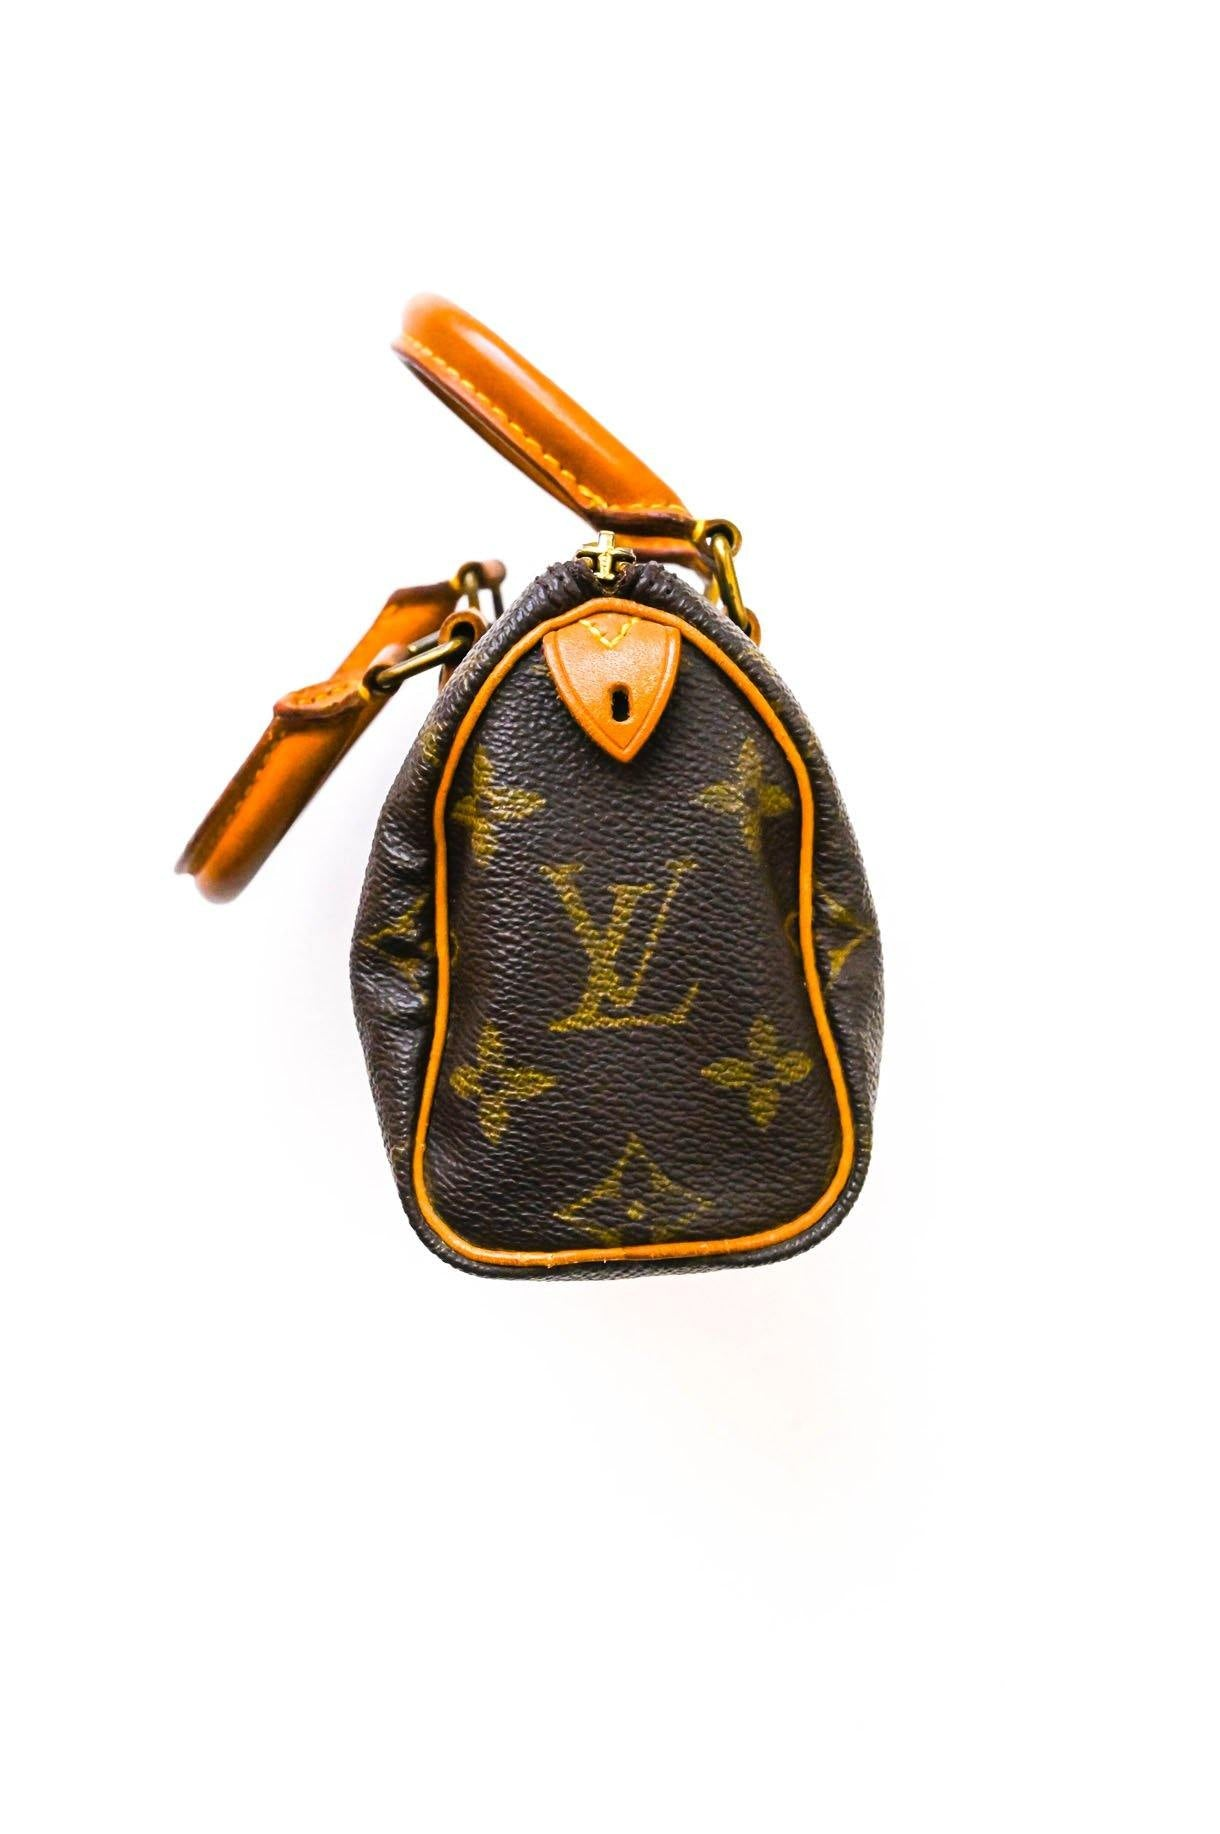 Louis Vuitton Nano Speedy Handbag